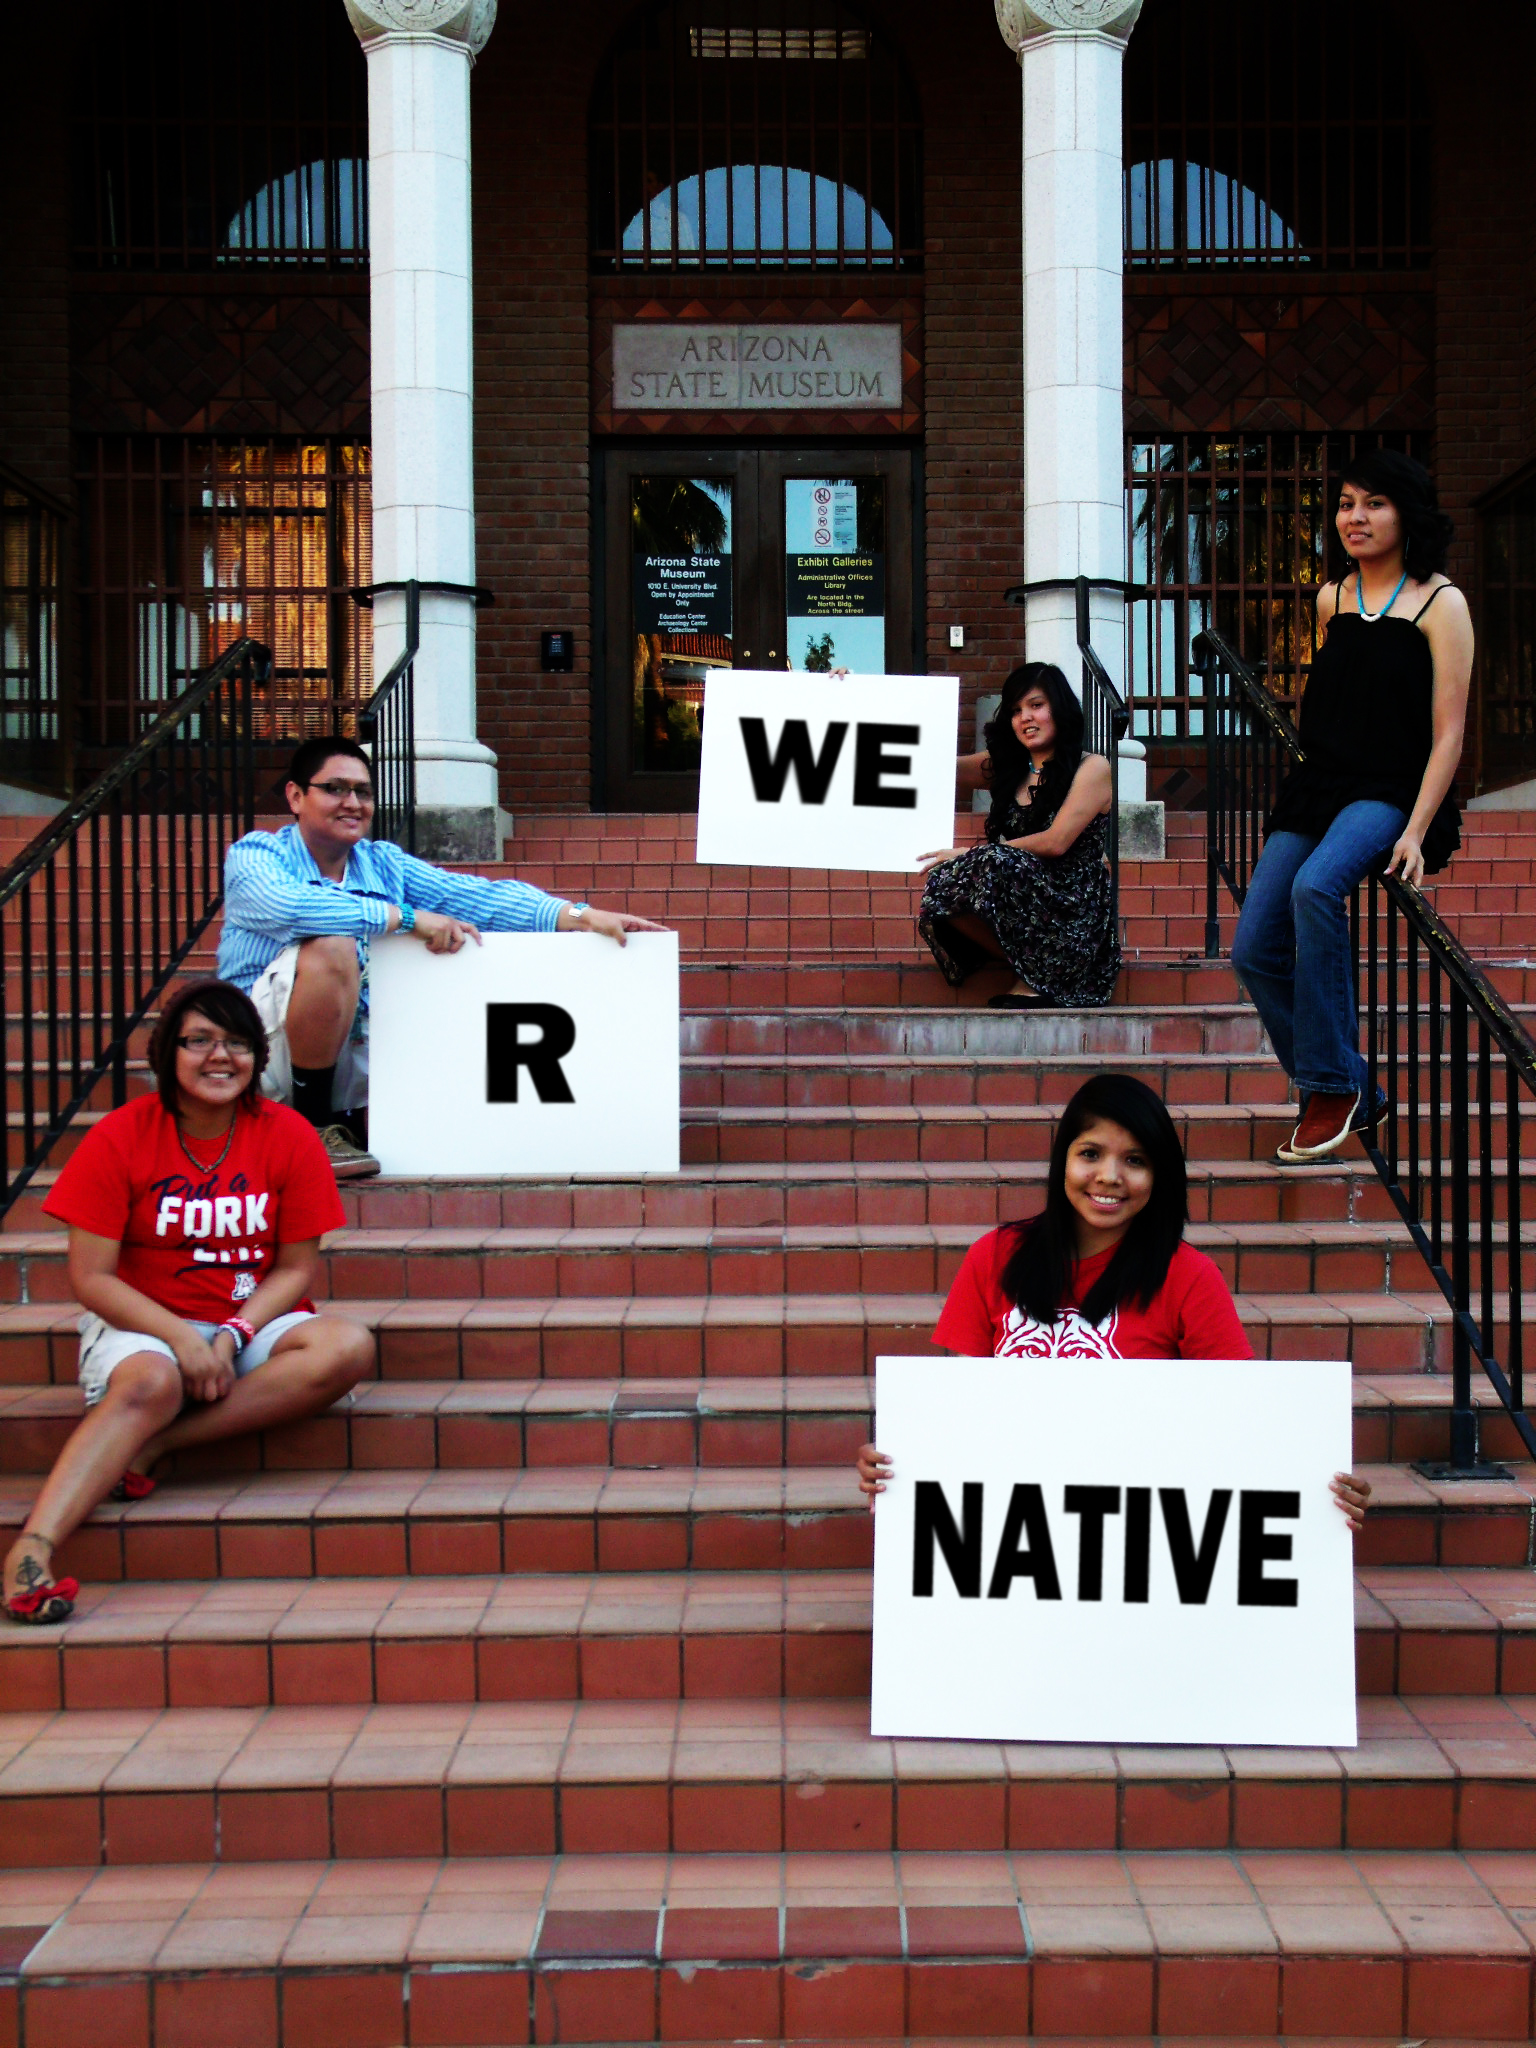 Five youth outside the Arizona State Museum holding 'We R Native' signs